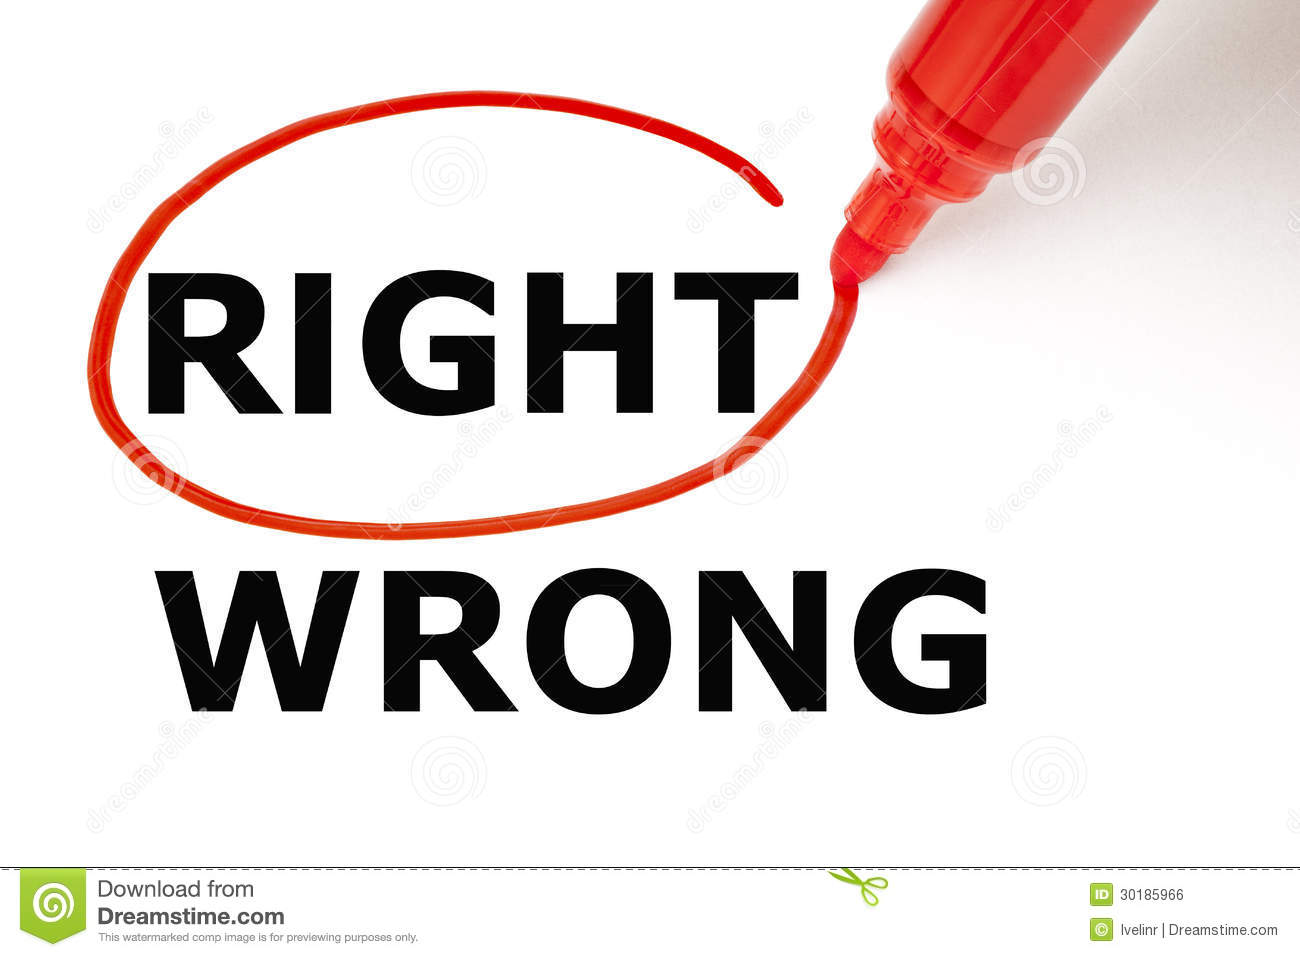 Choosing Right instead of Wrong. Right selected with red marker.